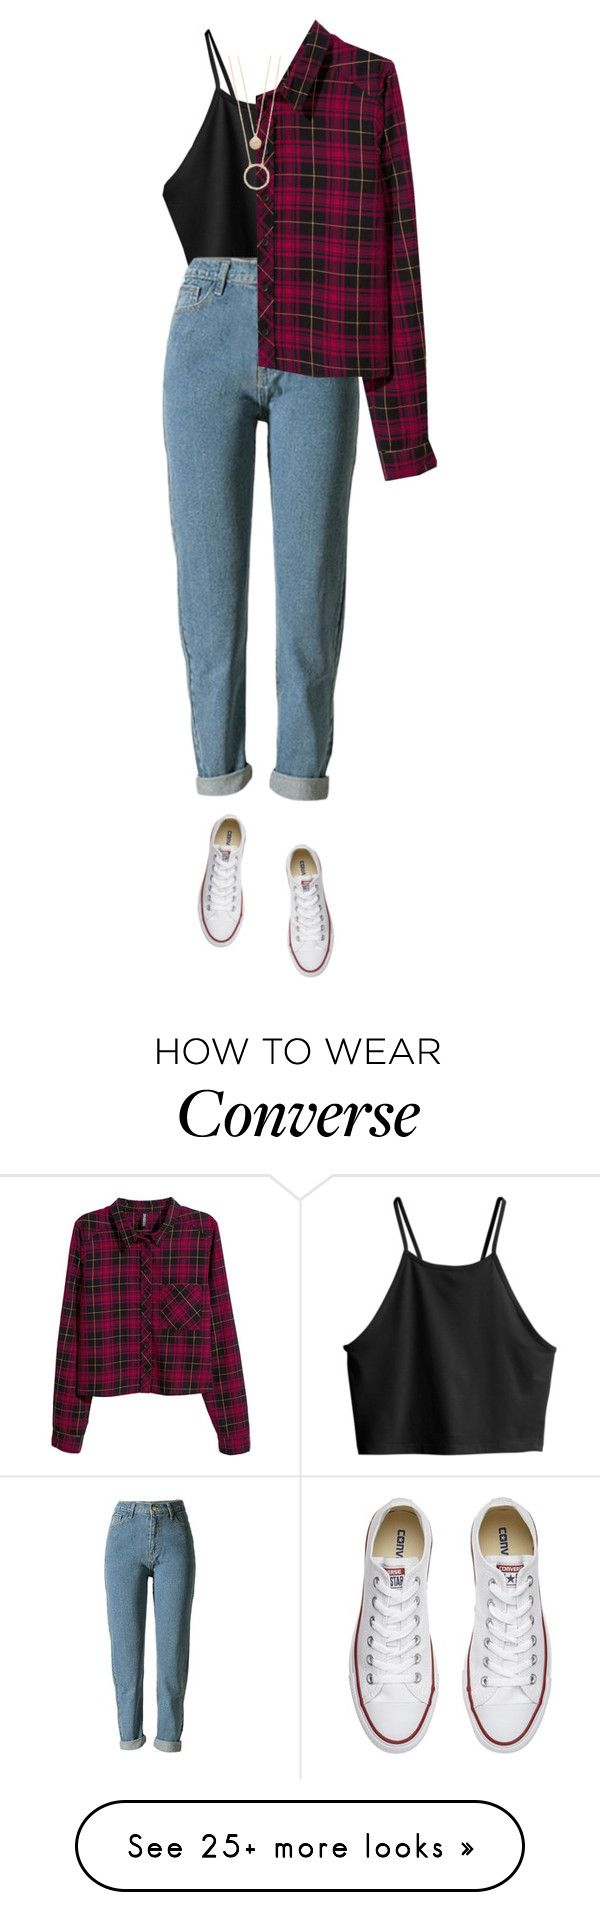 """Allen Barry // Imagine"" by mel2016 on Polyvore featuring H&M, Kate Spade, Converse, polyvoreeditorial, polyvorefashion and imaginemel"